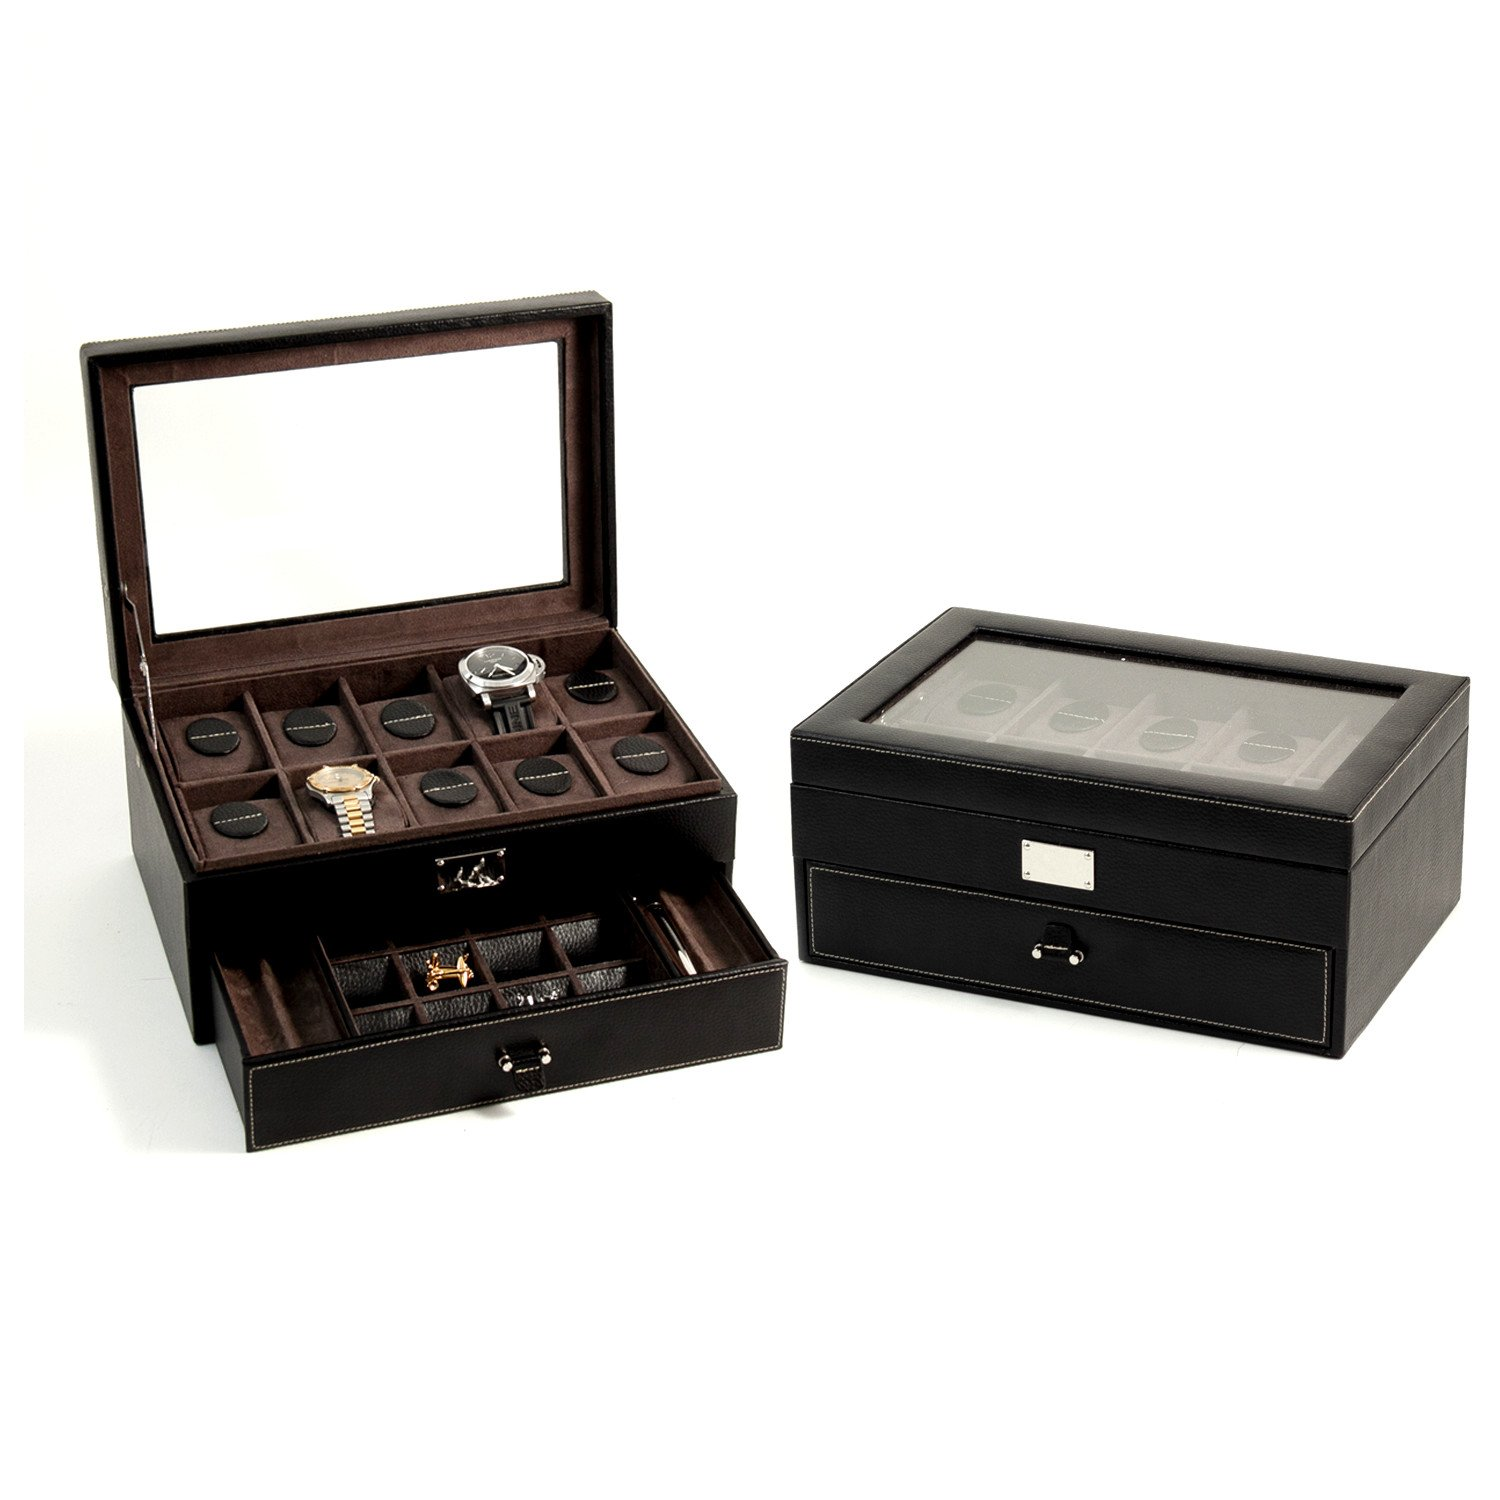 Amazon.com: Black Leather 10 Watch Case With Glass Top, Drawer For Cufflinks  U0026 Pens: Home U0026 Kitchen